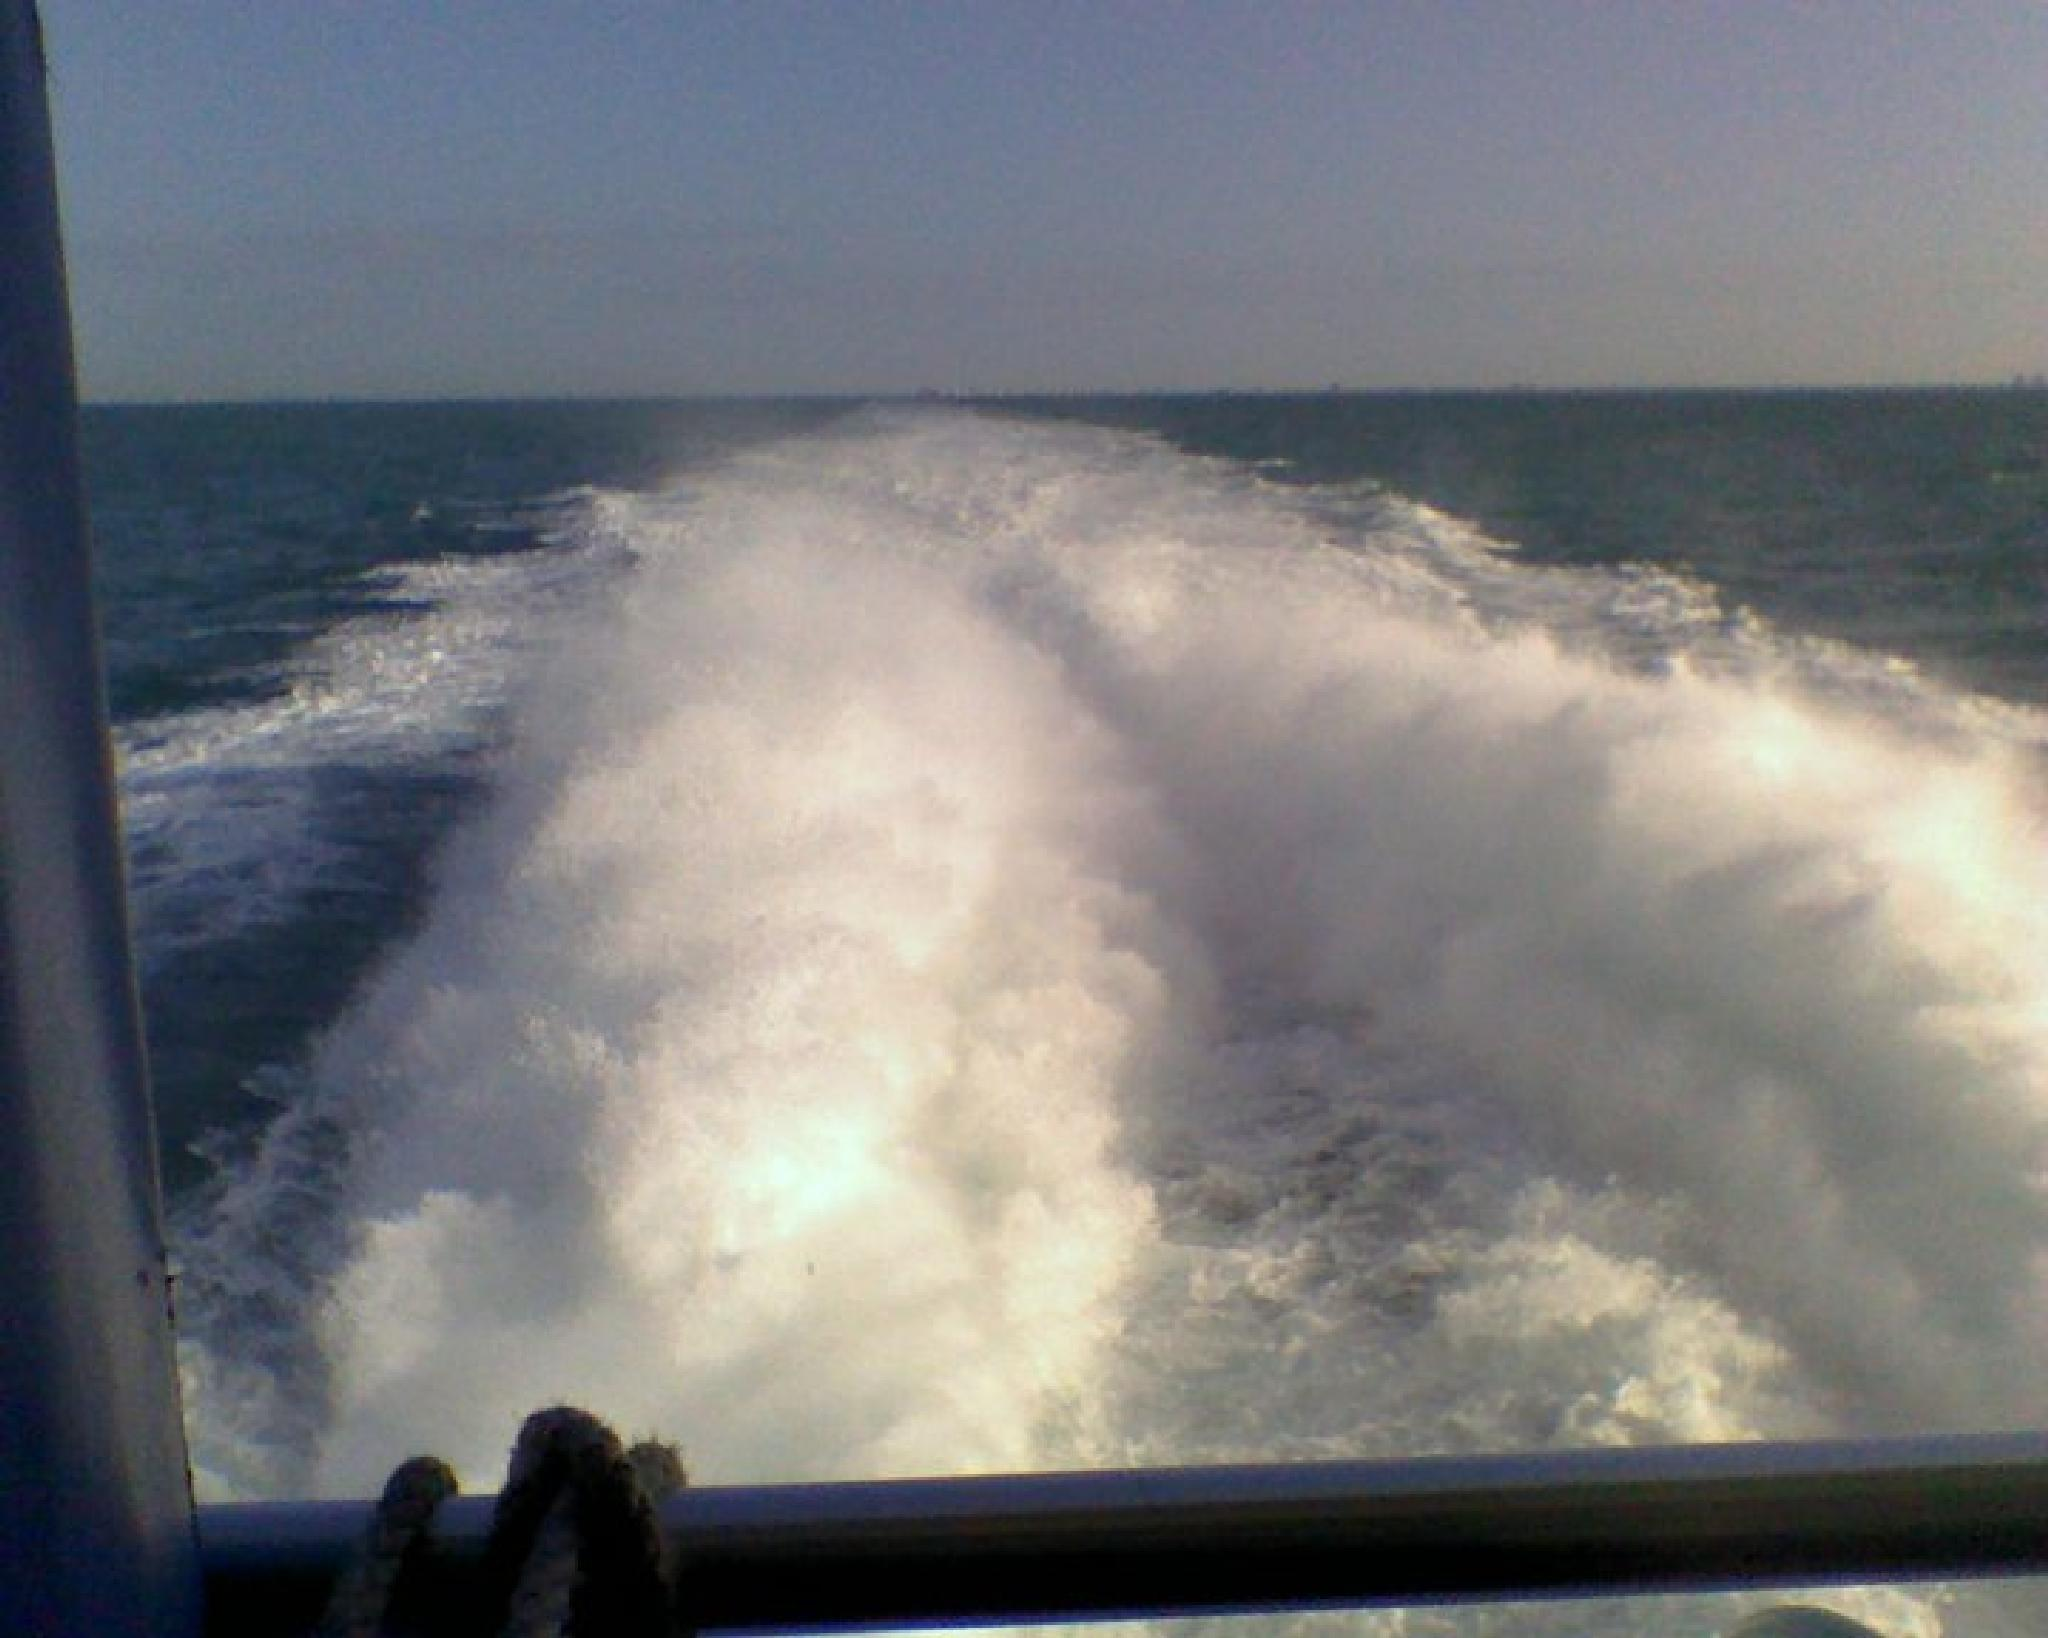 Wake Behind The Key West Express Boat by crystal.lennon1